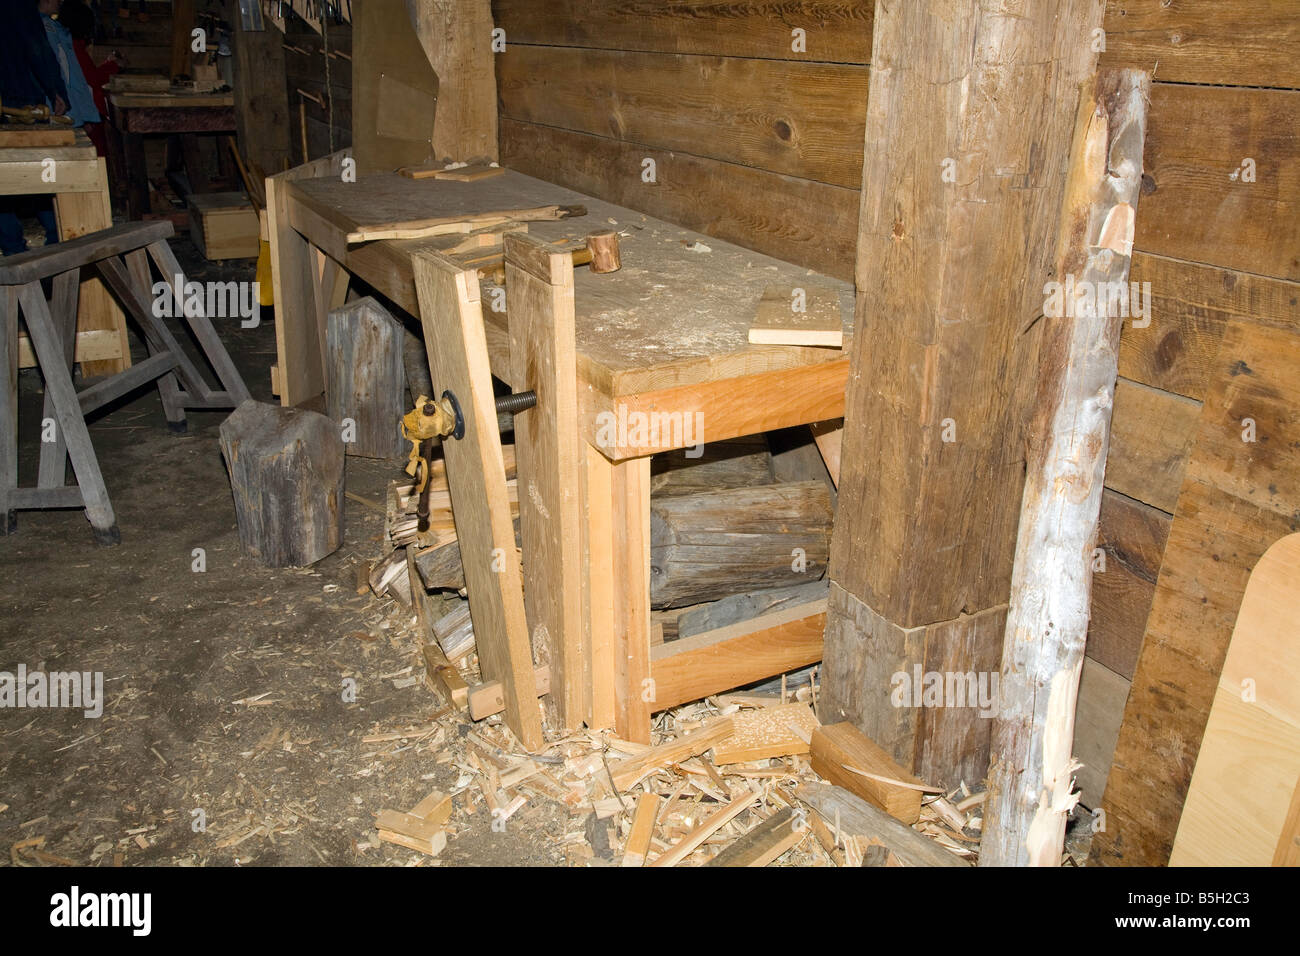 Early wood working bench as seen at Huron Indian Native American Aboriginal Village in Midland,Ontario,Canada - Stock Image